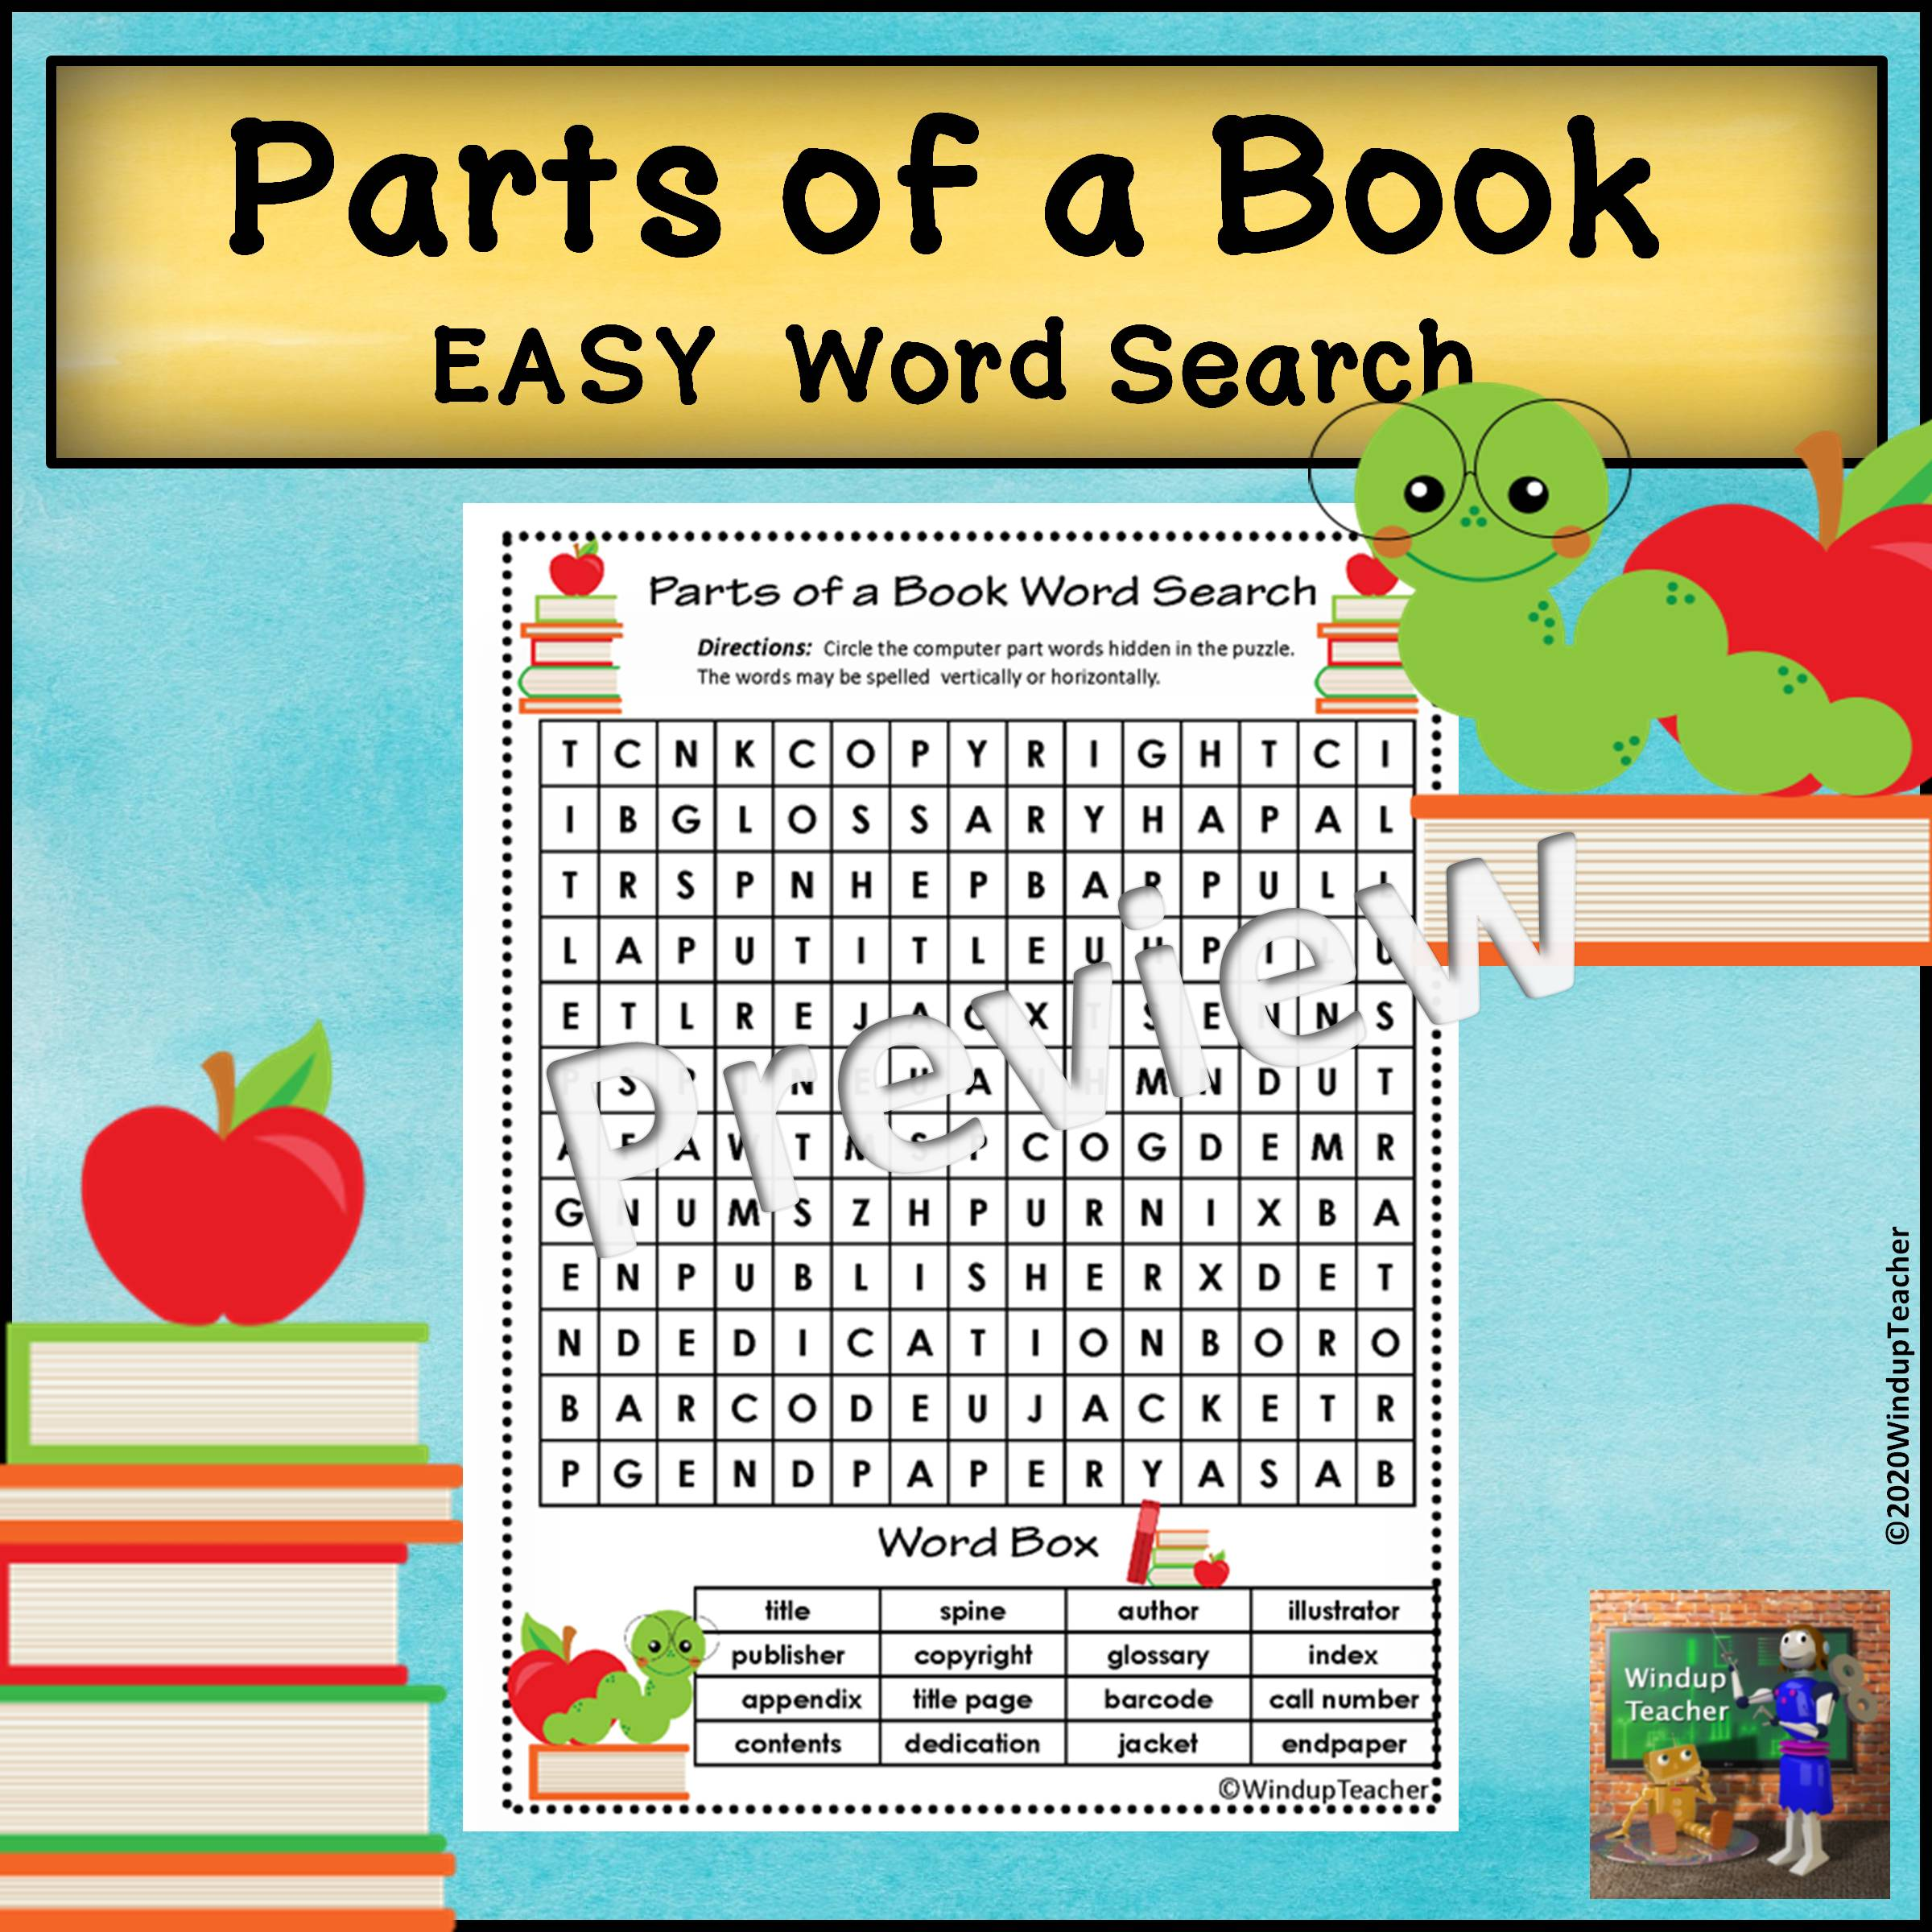 Parts of a Book Word Search | EASY Puzzle